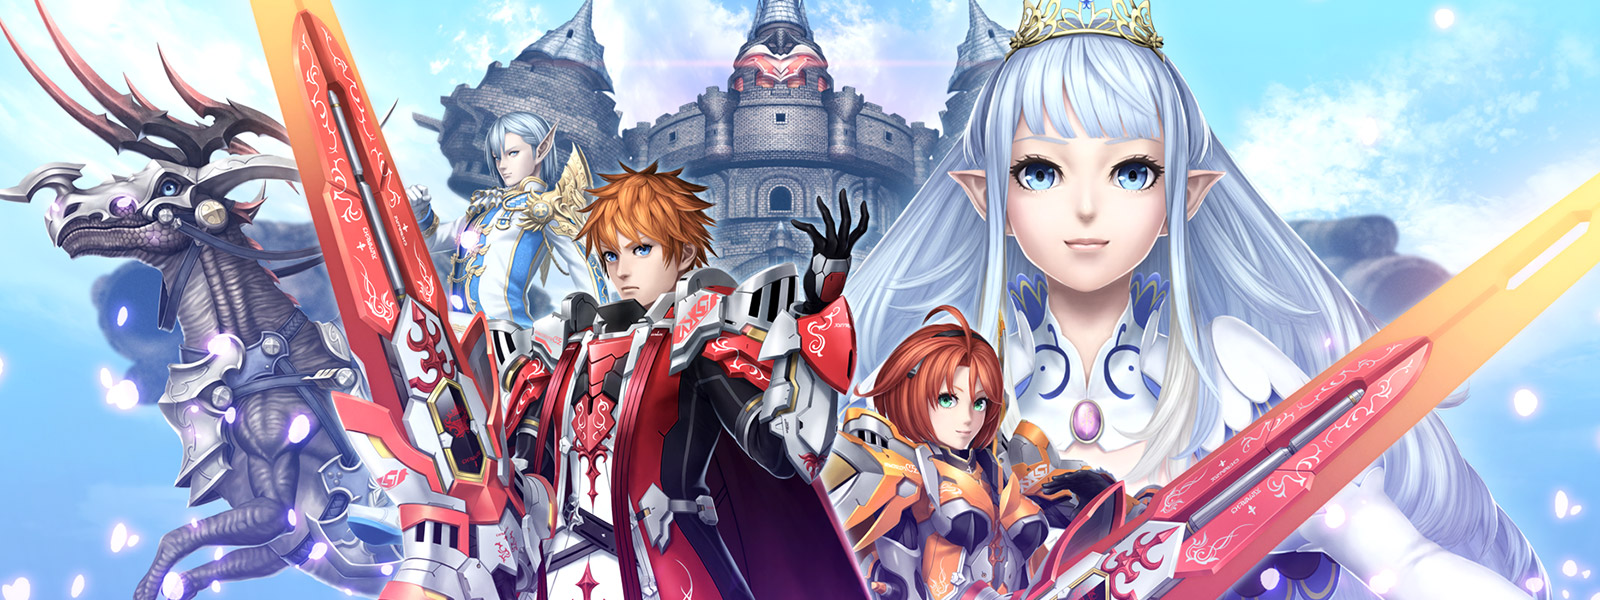 Collage of Phantasy Star Online 2 characters against a backdrop of blue sky over a castle.